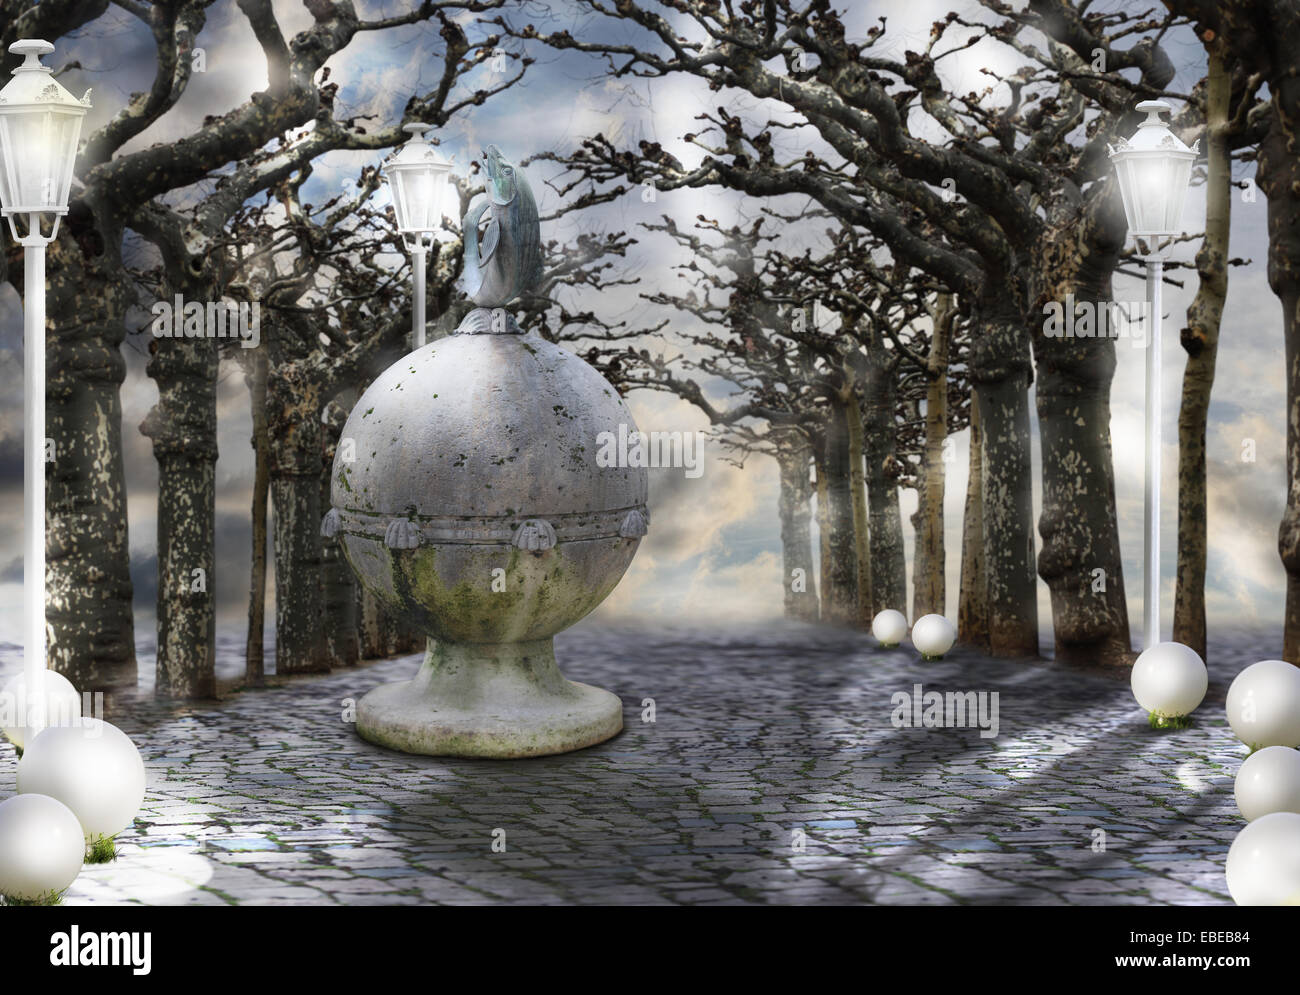 Mysticism. Mystic Alley with Magic Trees in Haze - Stock Image